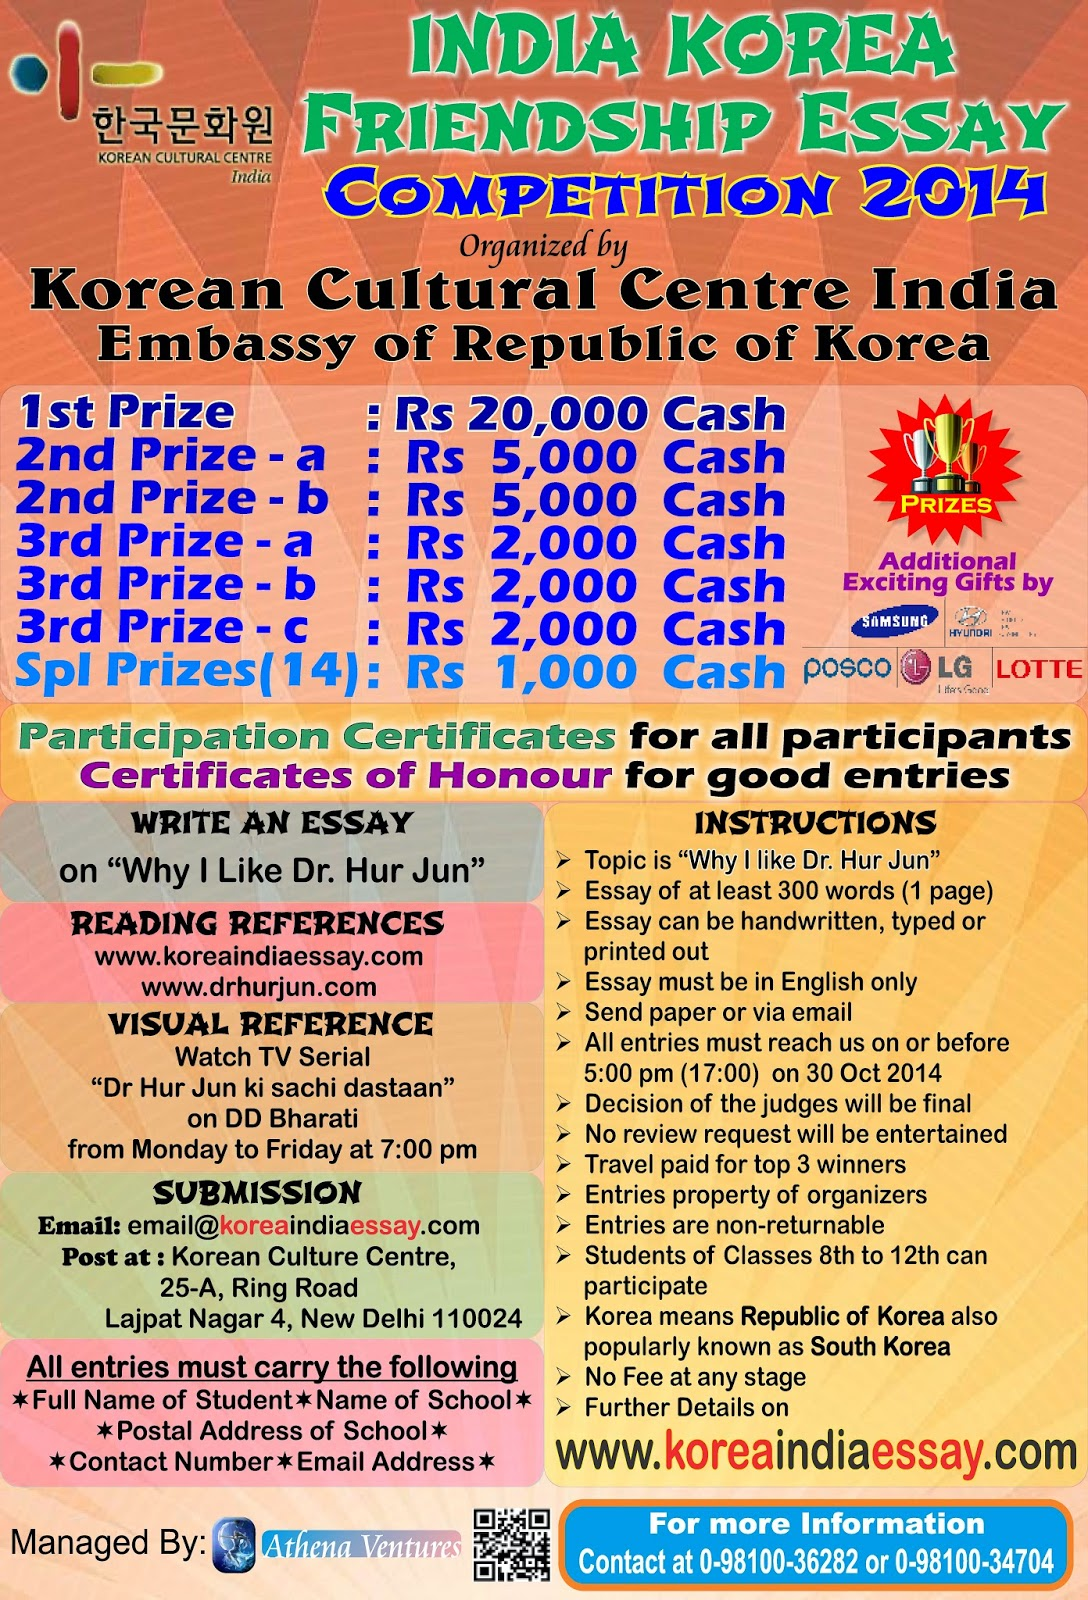 essay about korea korean war essay gxart about korea essay essay about korea korea friendship essay competition scholastic world korea friendship essay competition